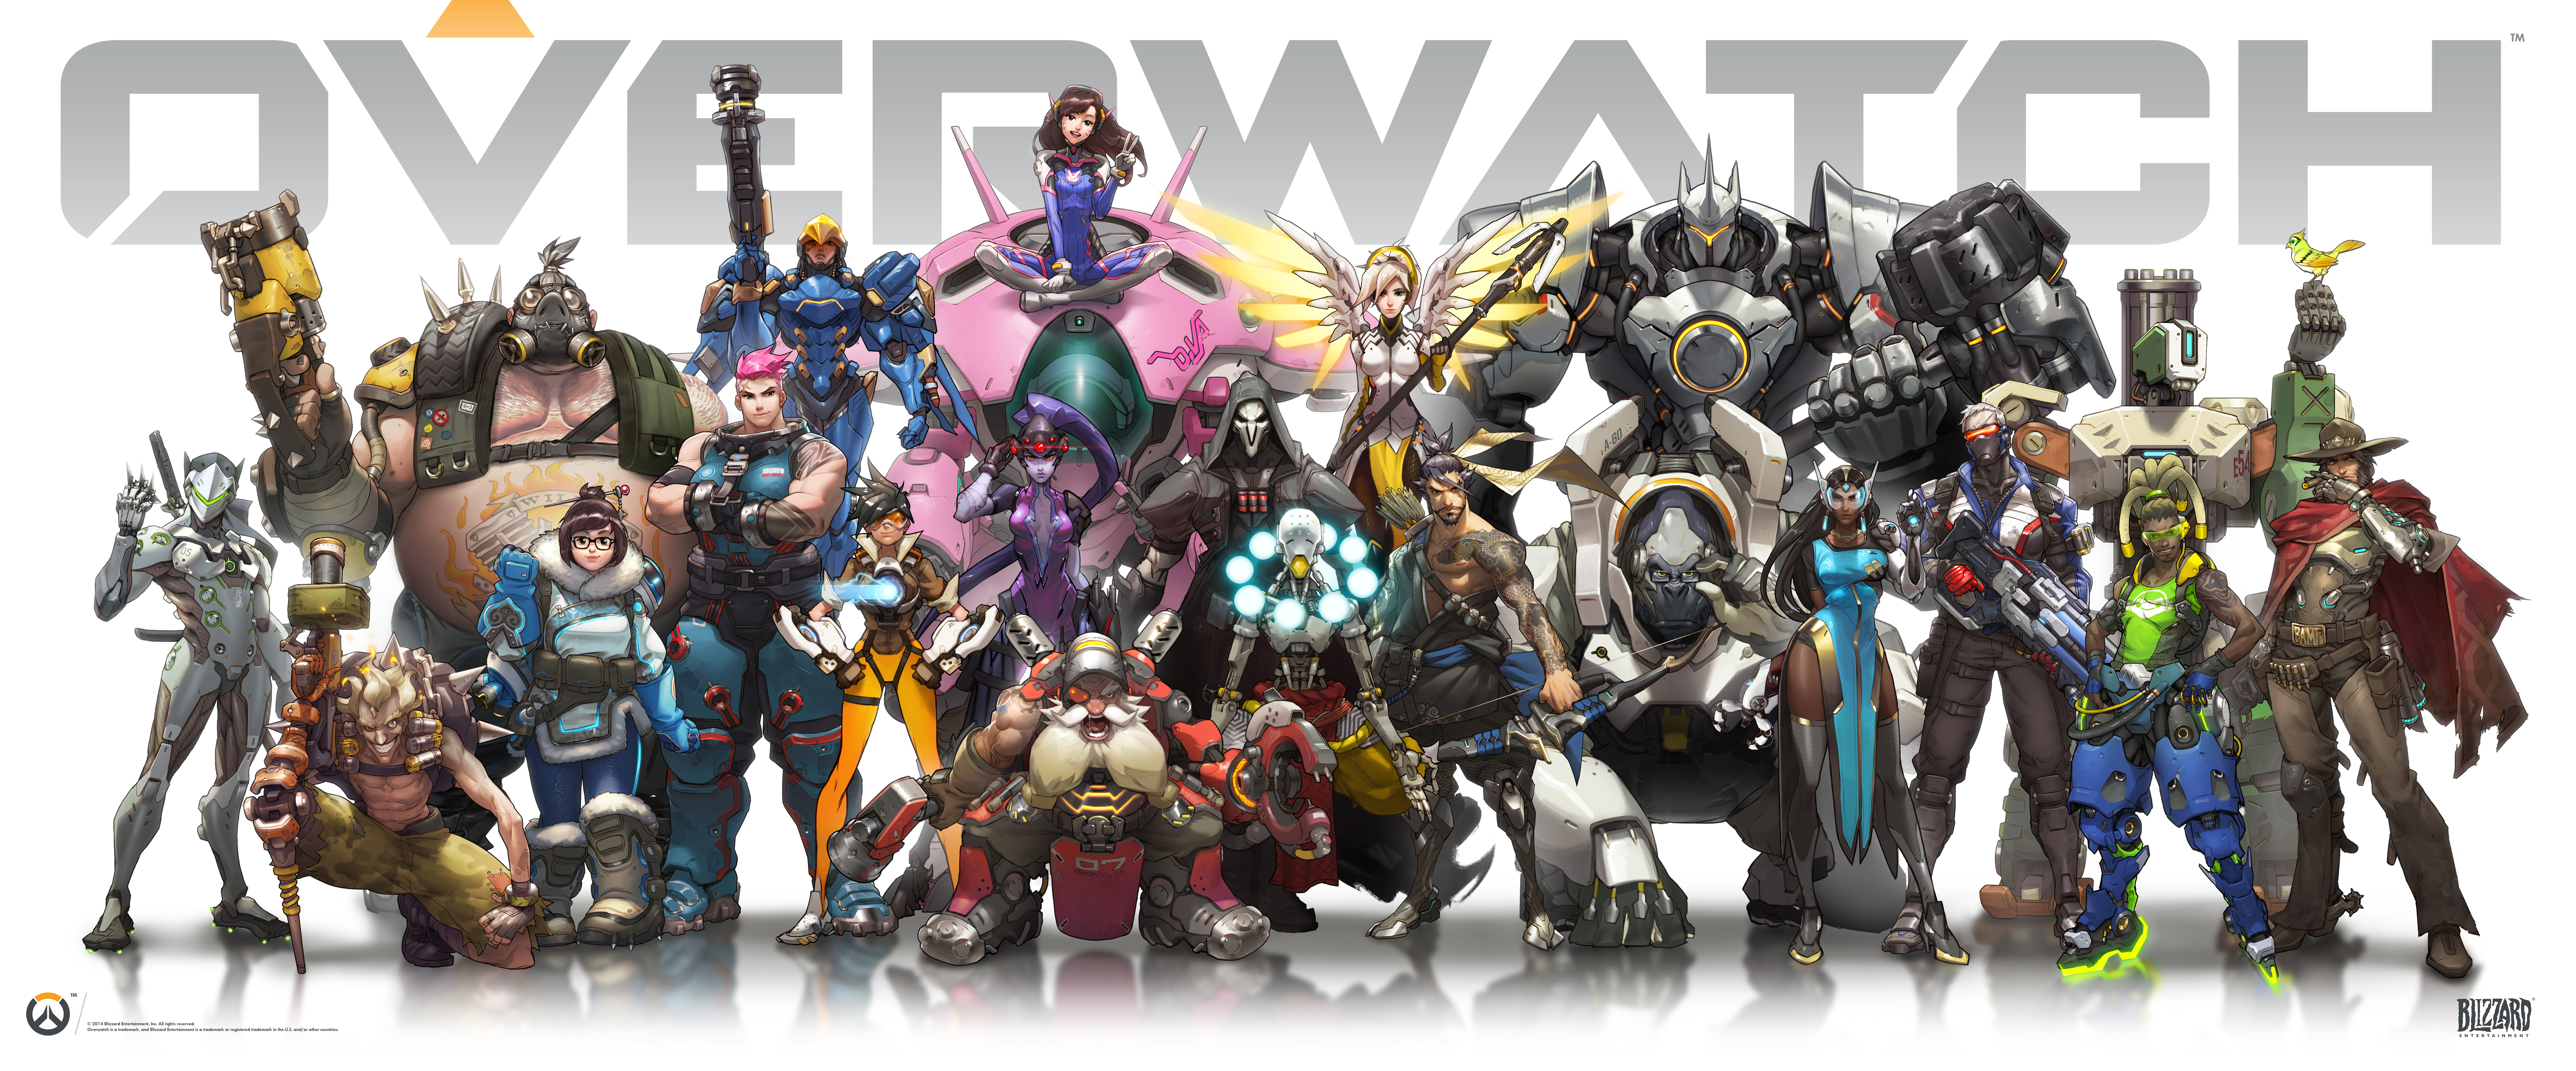 [Watch] First Look at New Overwatch Arena Maps Coming with Anniversary Celebration